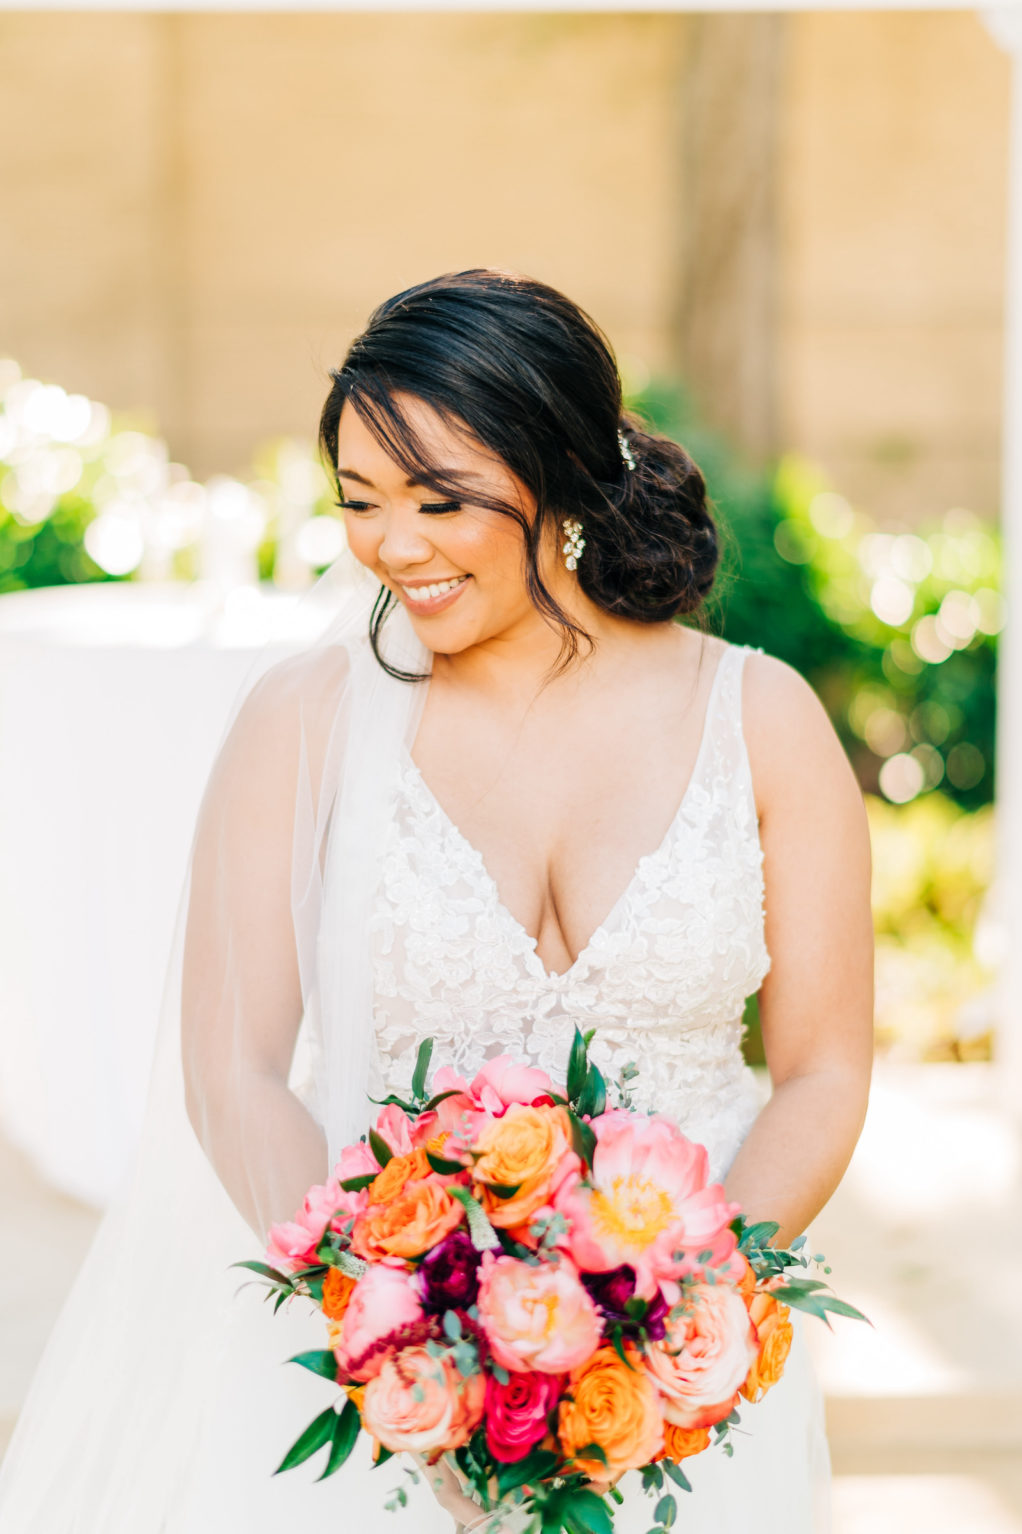 Classic Bride in Plunging V Neckline Lace Wedding Dress Holding Vibrant Colorful Pink, Orange Roses and Greenery Floral Bouquet   Tampa Bay Wedding Florist Monarch Events and Design